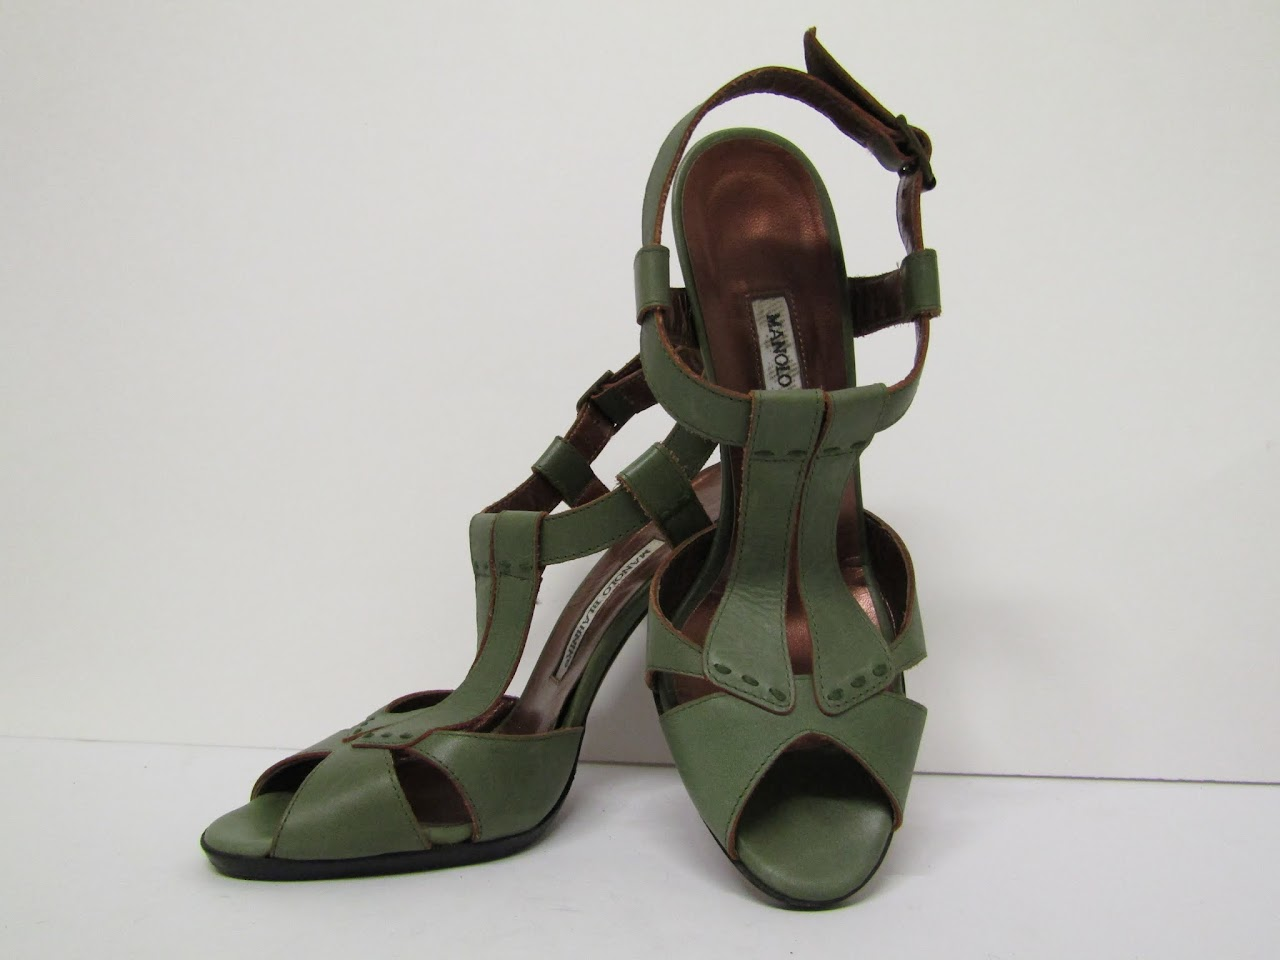 Manolo Blahnik Green Stiletto Sandals